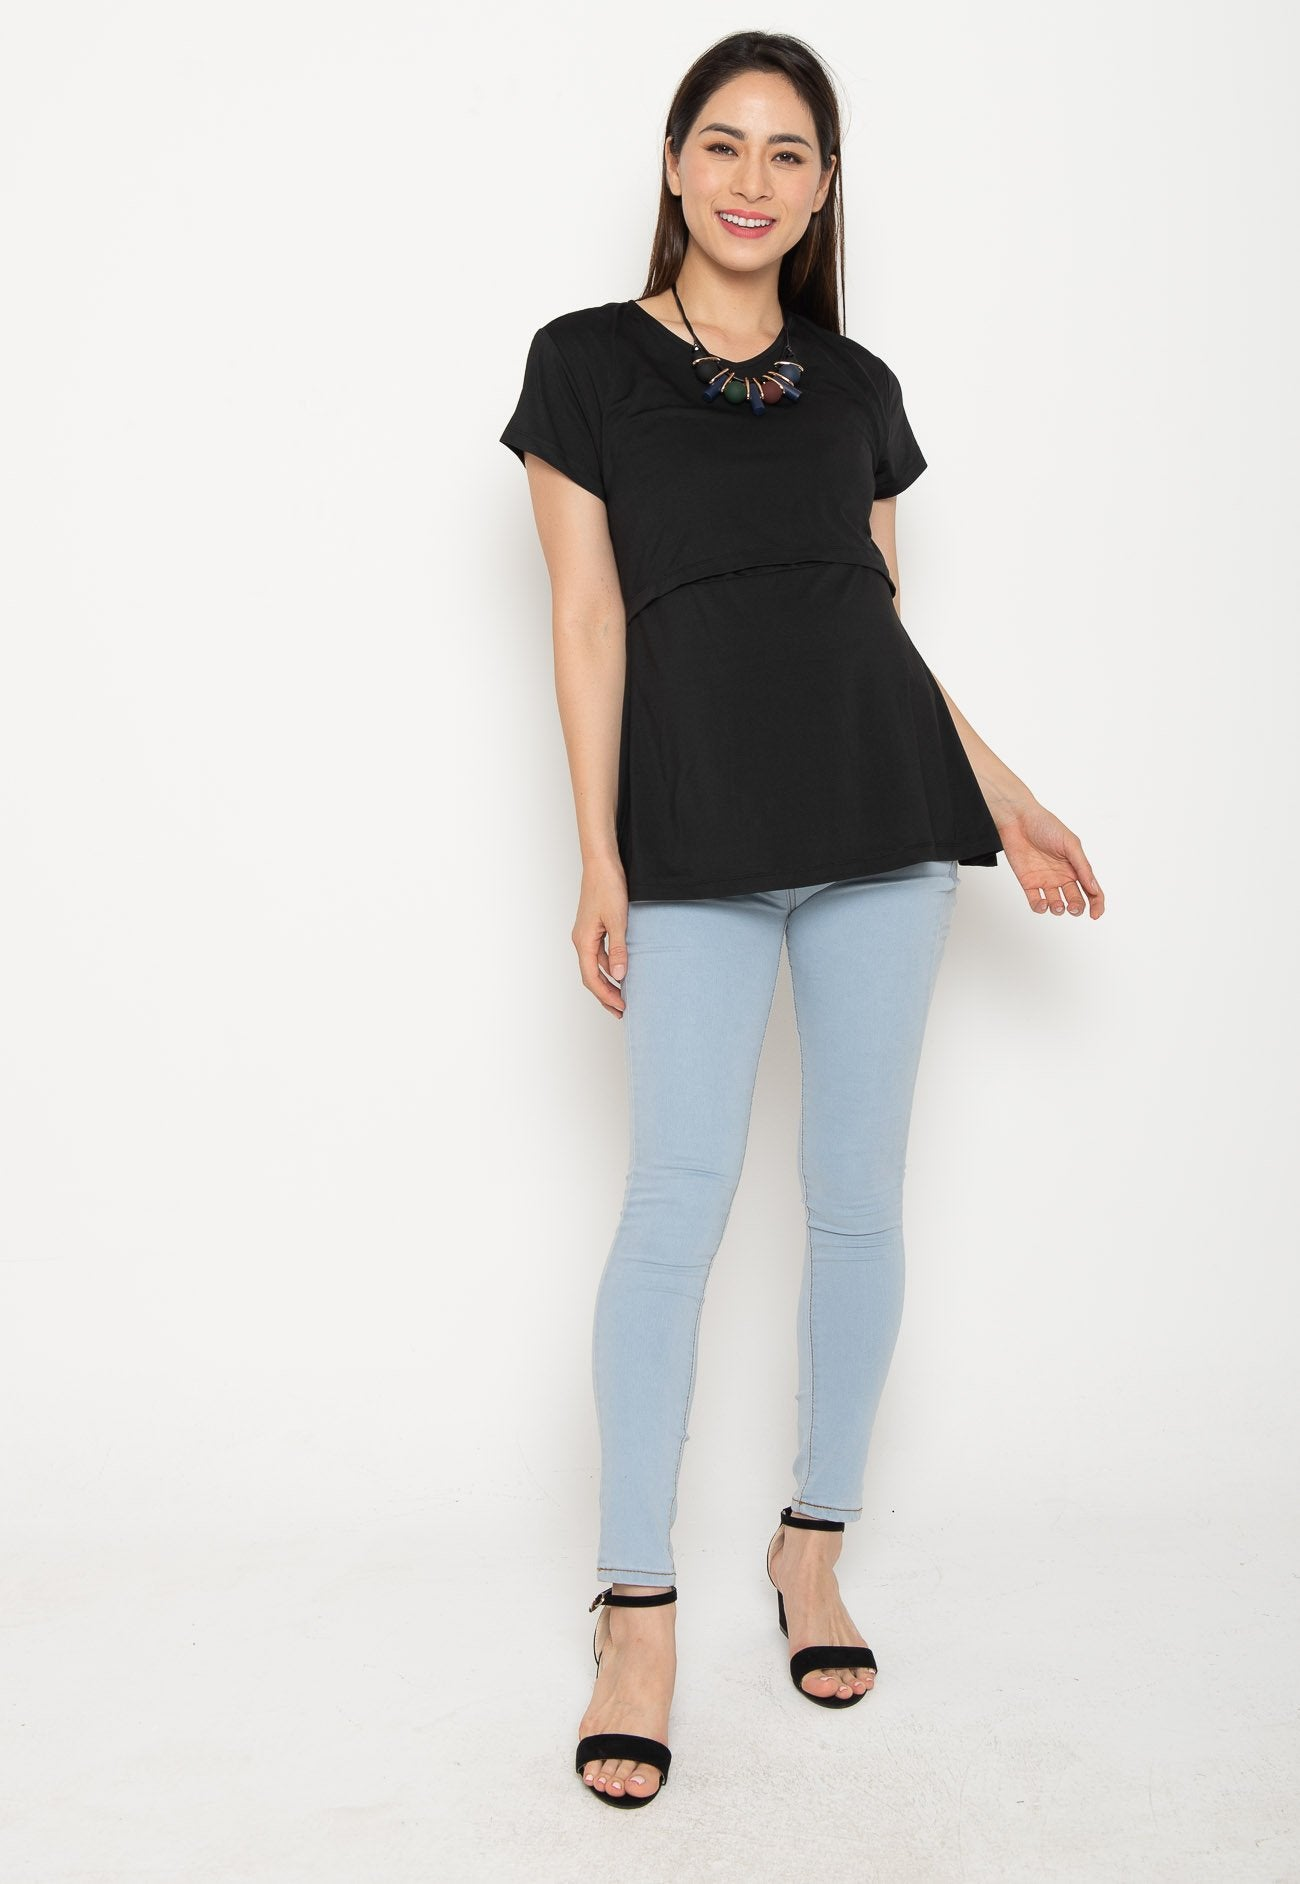 Mothercot Cato Basic Nursing Tee in Black  by JumpEatCry - Maternity and nursing wear